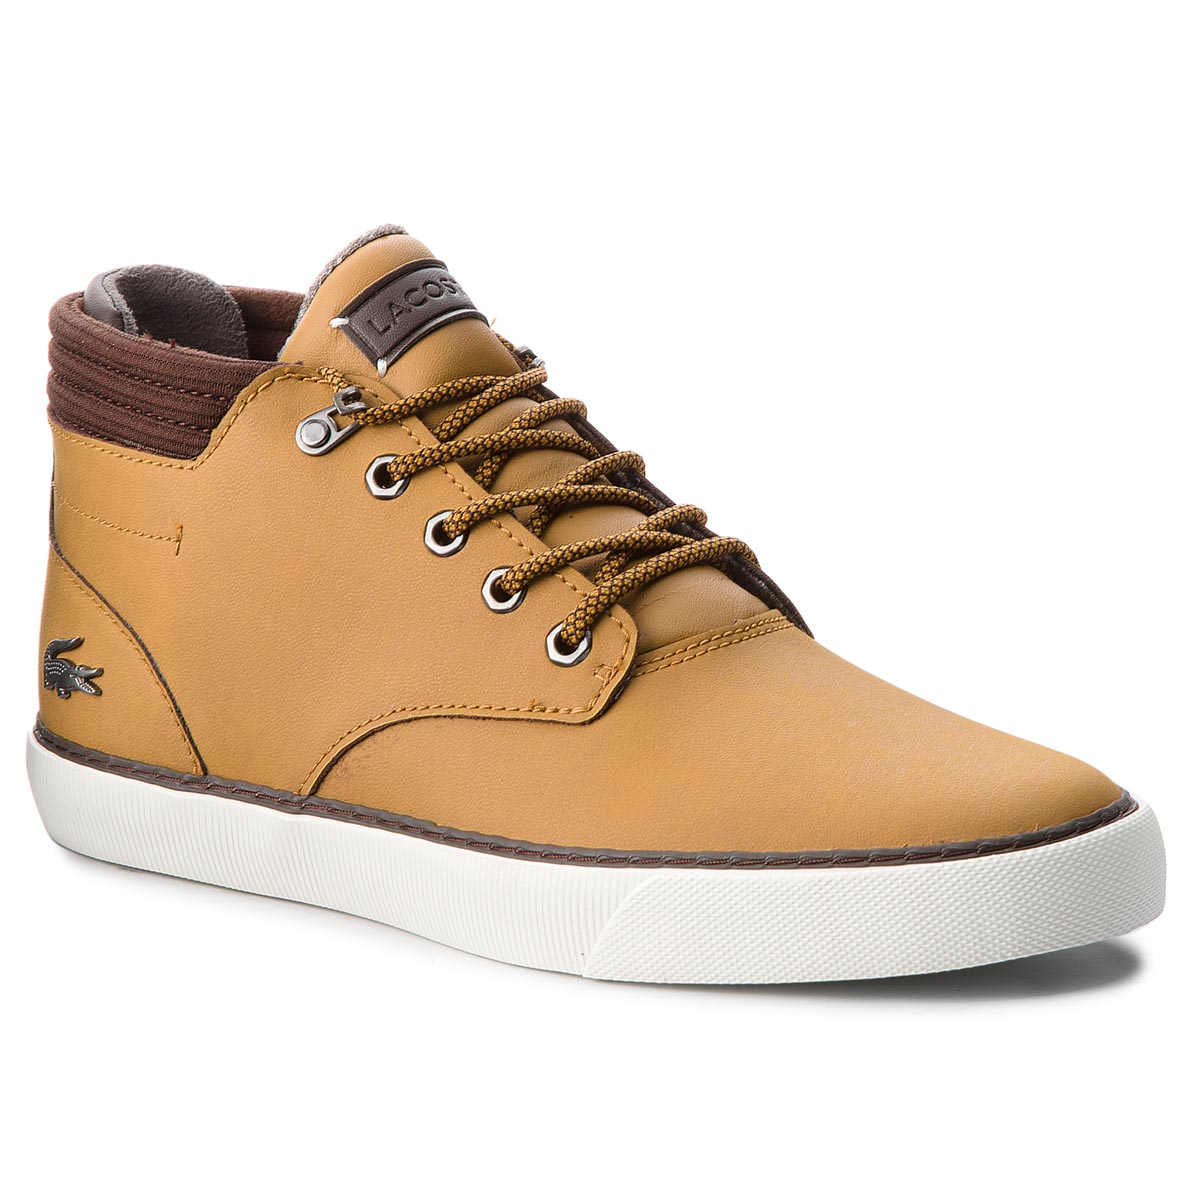 Cam 7 Lacoste 35cam00232a9 Sneakers Esparre 118 Khkoff Wht 1 qzMLpSUGV